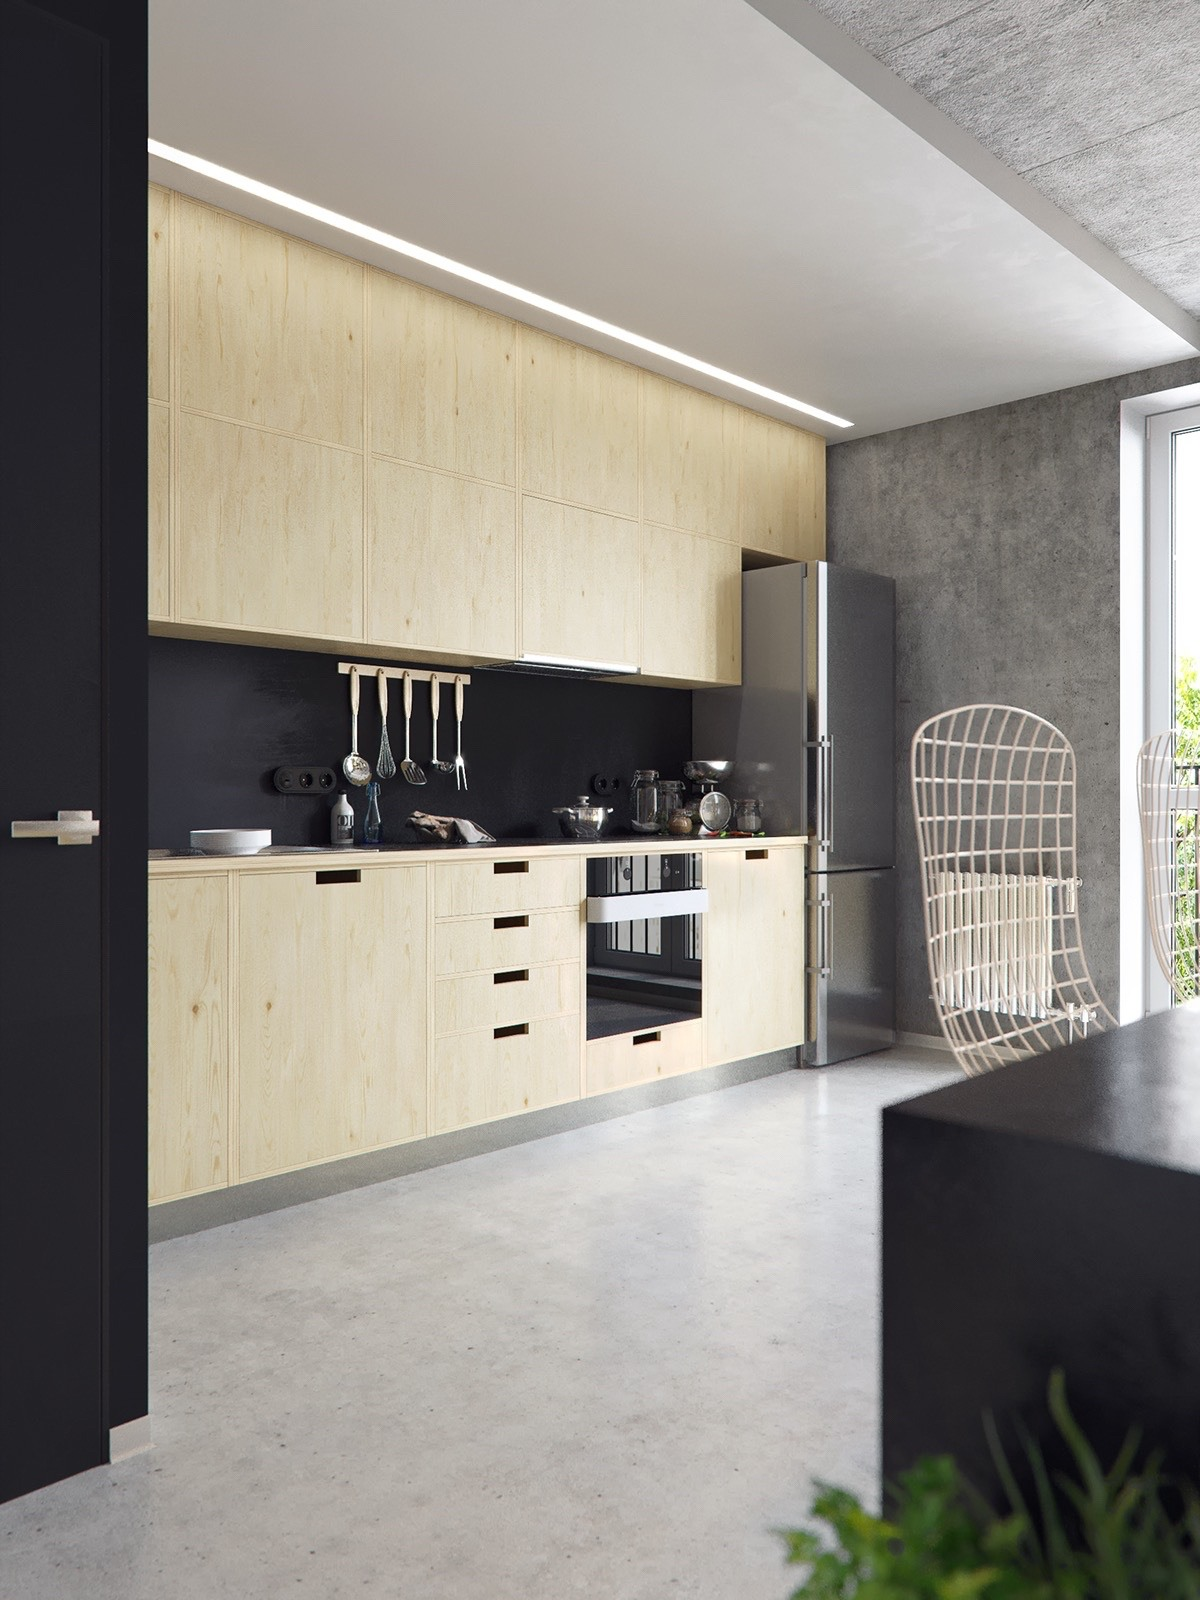 Light Wood Cabinets Kitchen Black Appliances - 3 concrete lofts with wide open floor plans